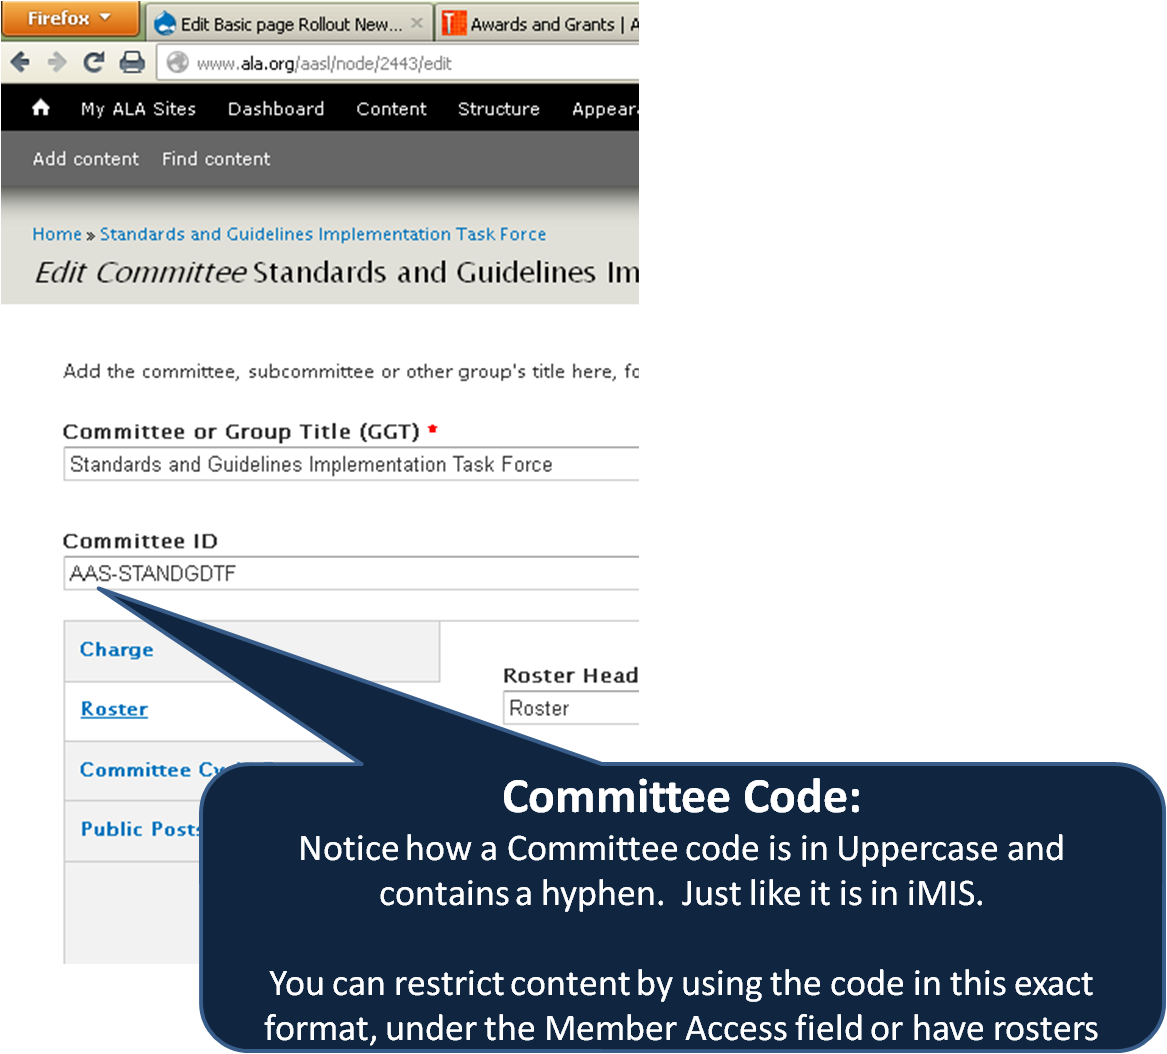 screenshot highlighting that the format of committee codes in Drupal must be in uppercase and include a dash, just like the code in iMIS